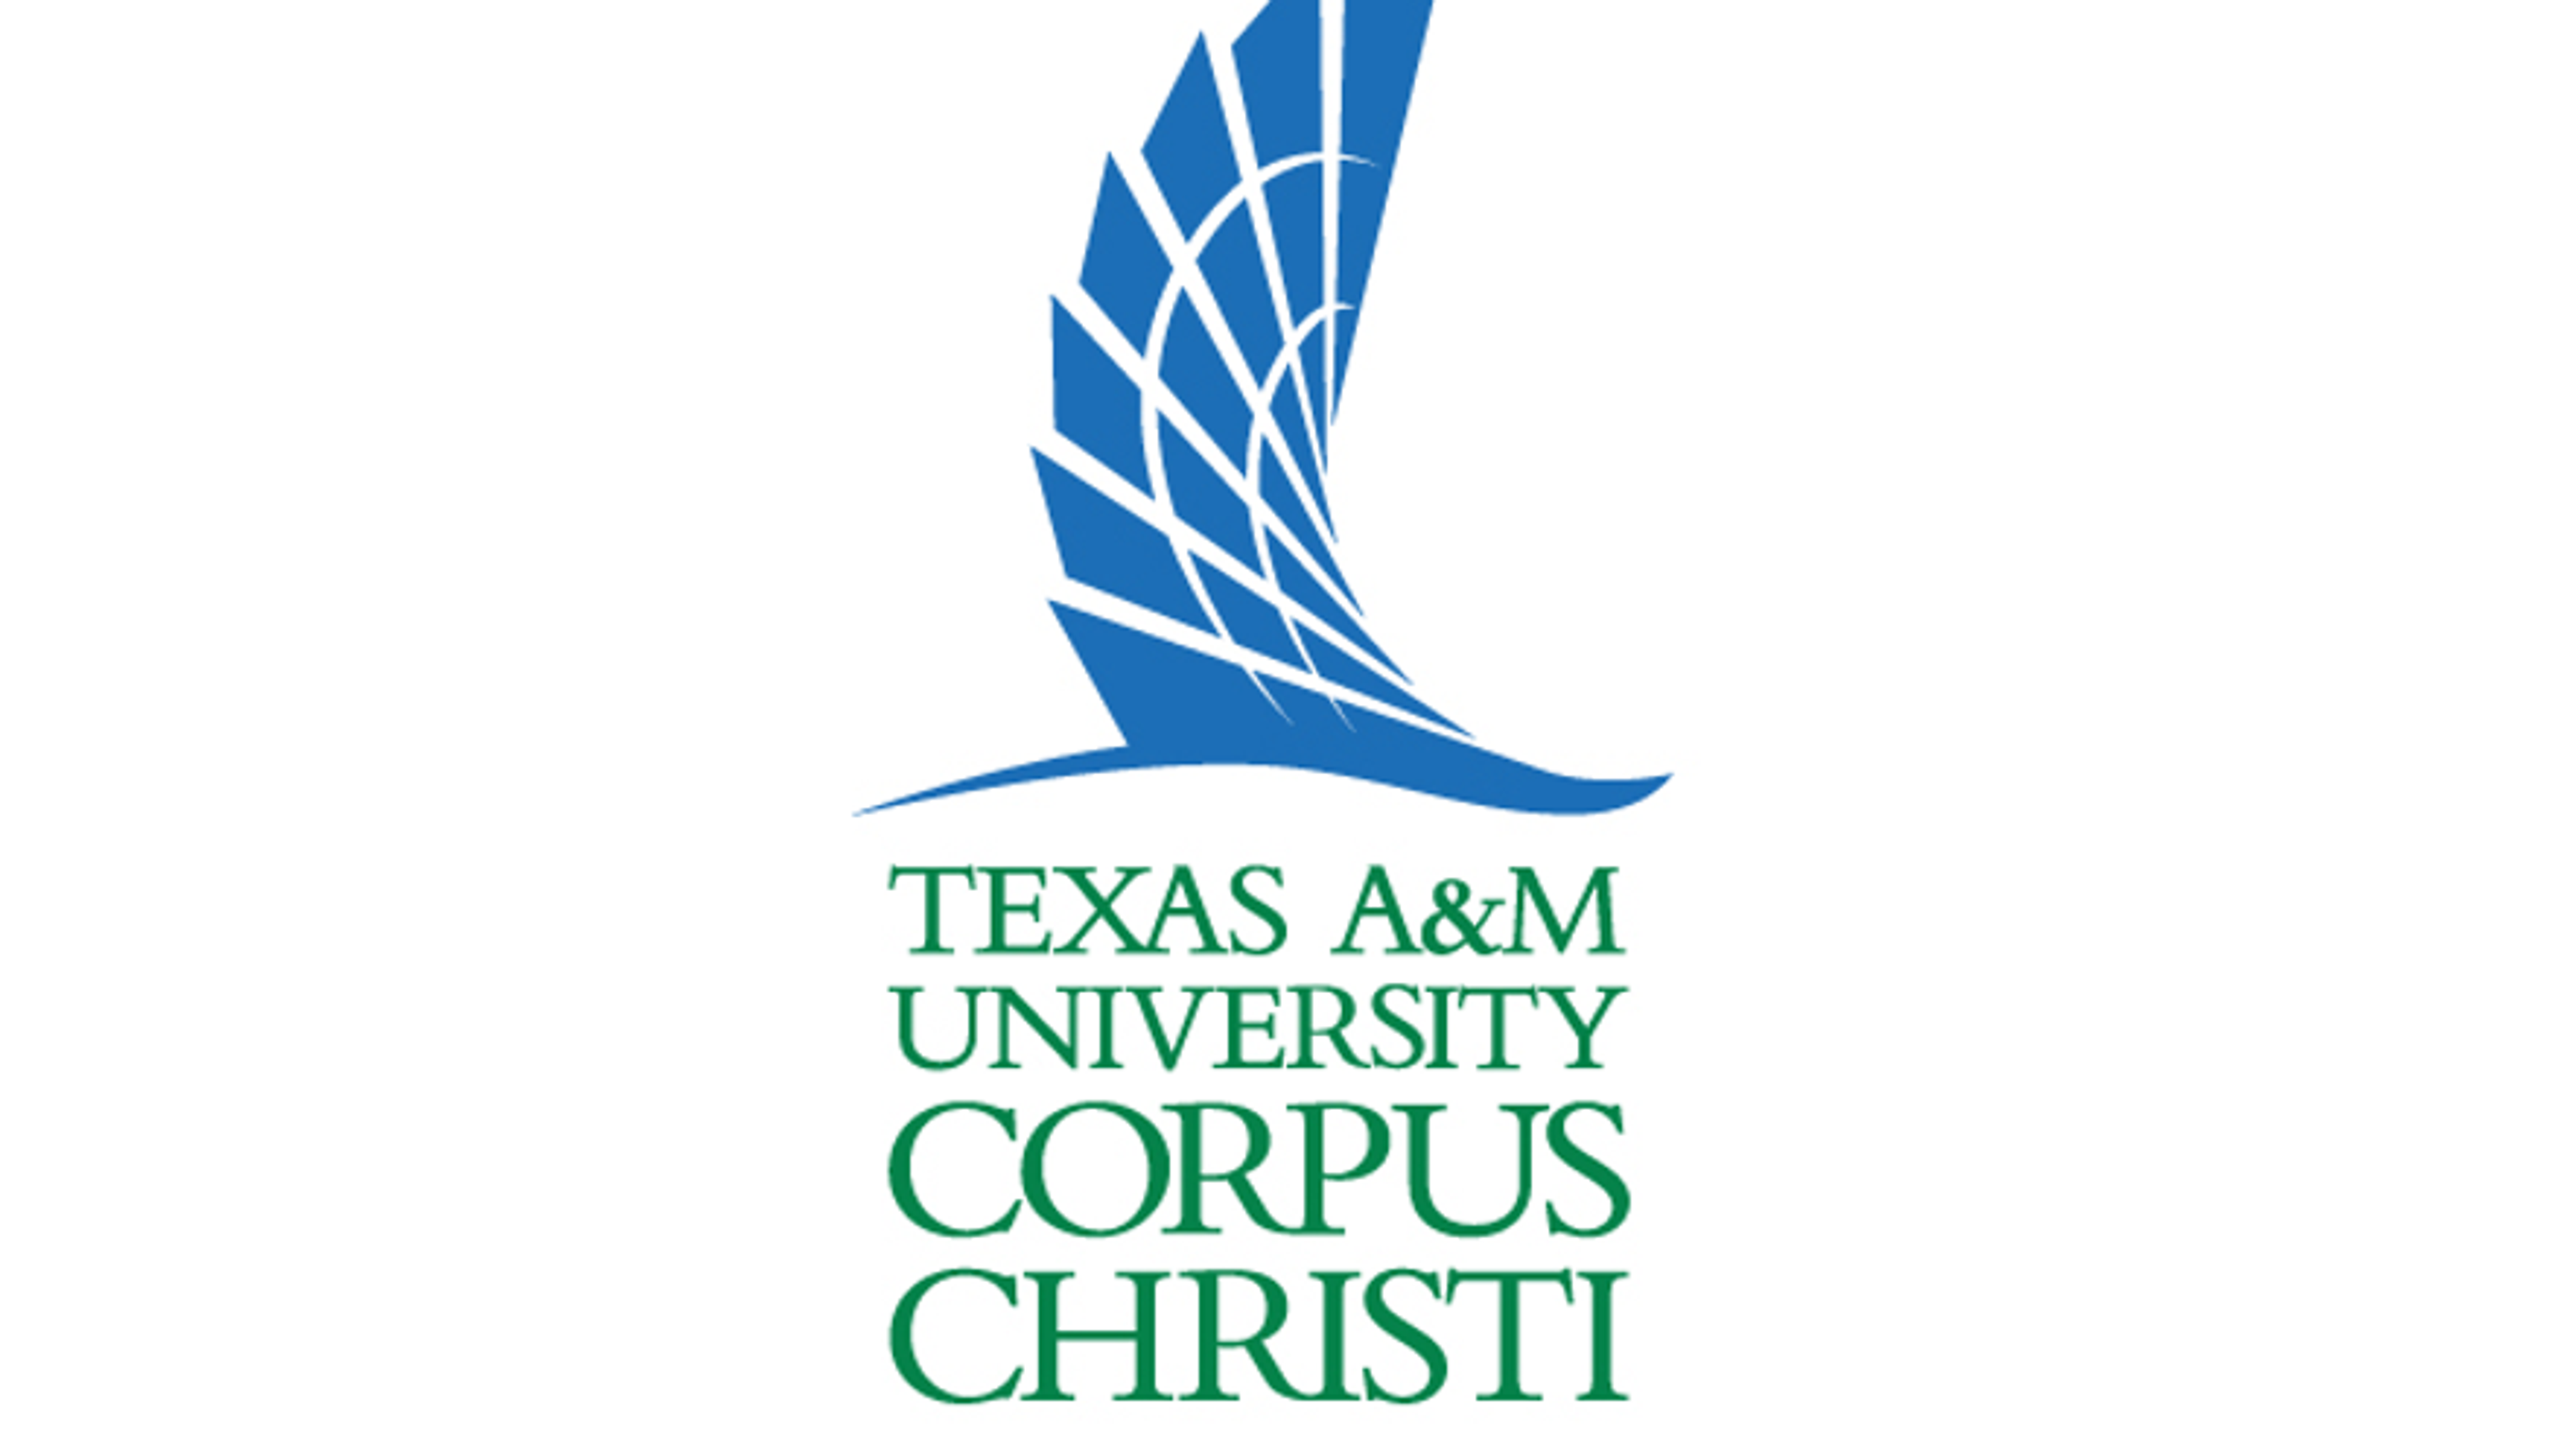 Texas A&M University CC student found dead on campus no foul play